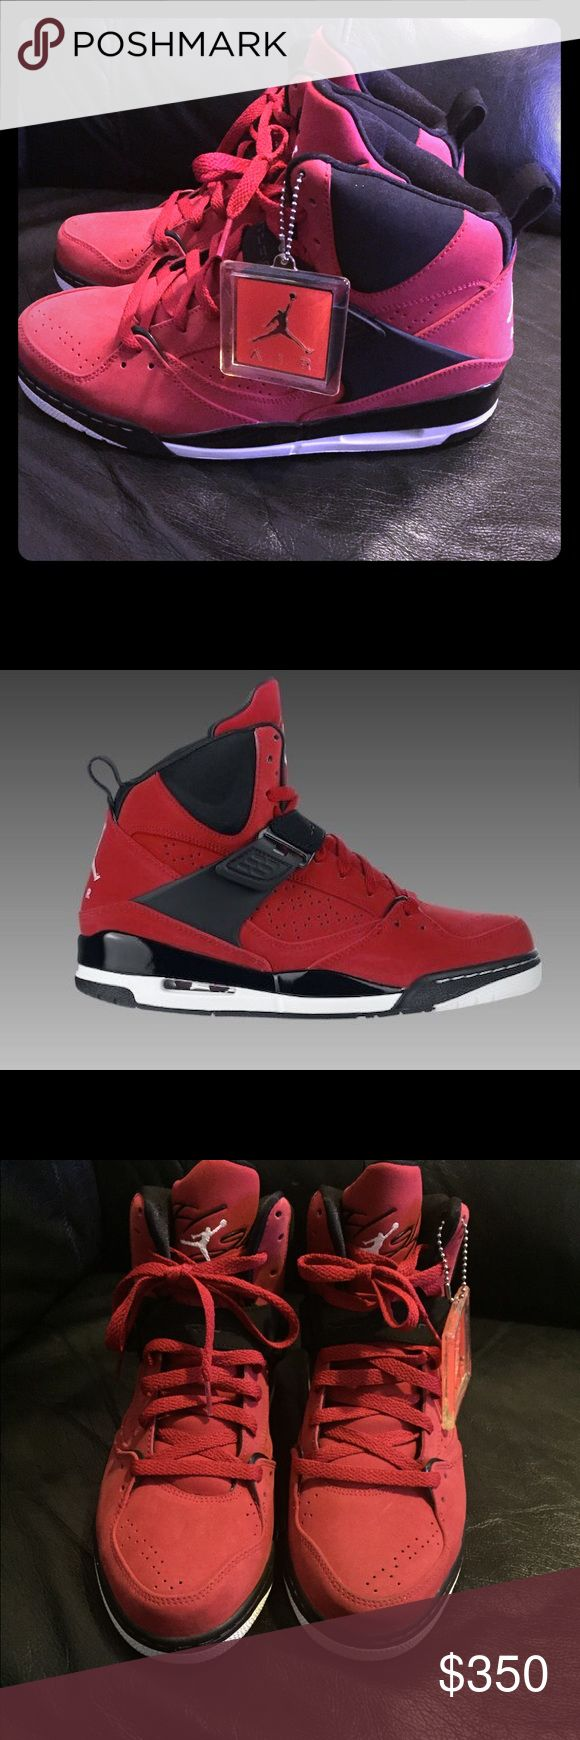 Rare Jordan flight 45 suede Worn one time in perfect condition rare 2010 Jordan flight 45 in red suede these are very hard to find and very rare in this color and size pretty much new for a seven year old shoe Jordan Shoes Sneakers